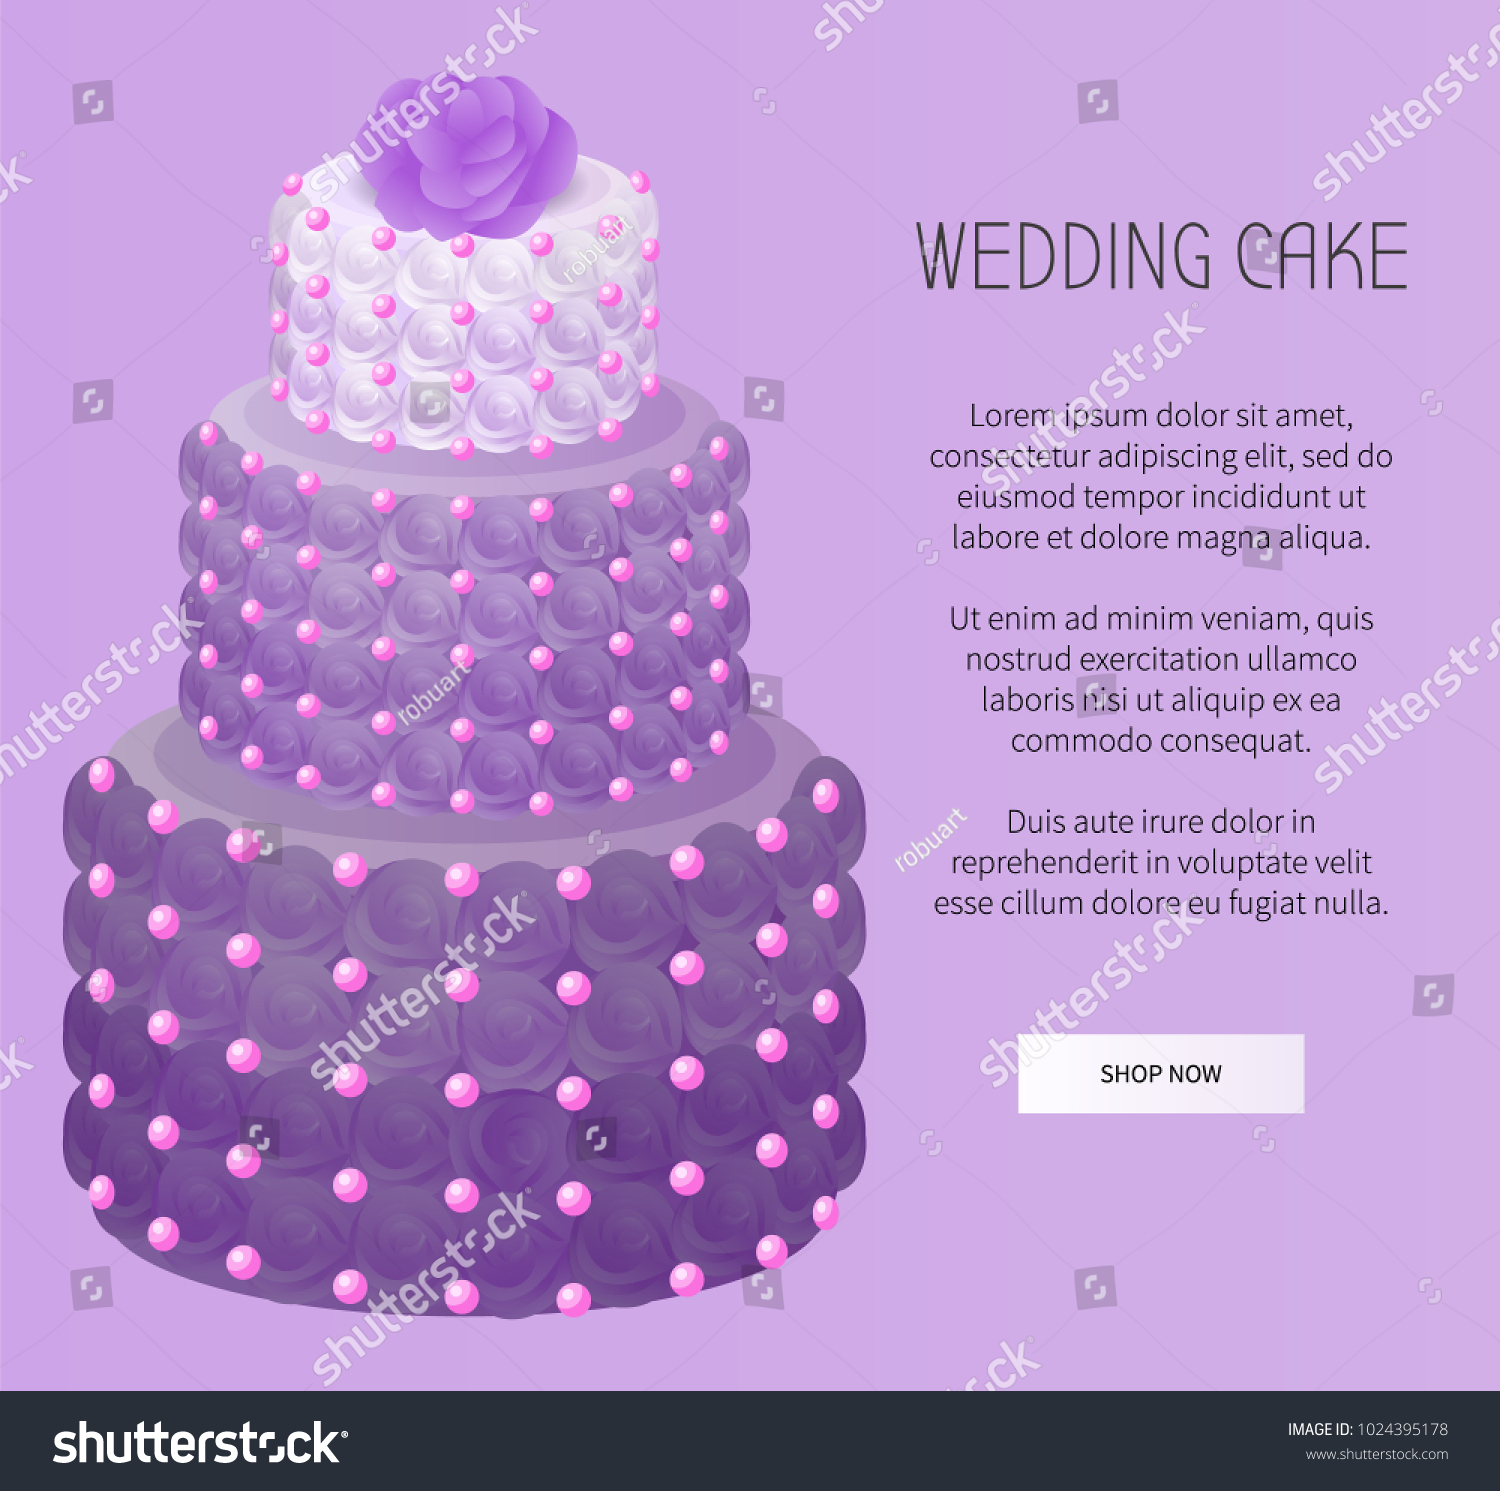 Wedding Cake Purple Color Roses Decoration Stock Vector 1024395178